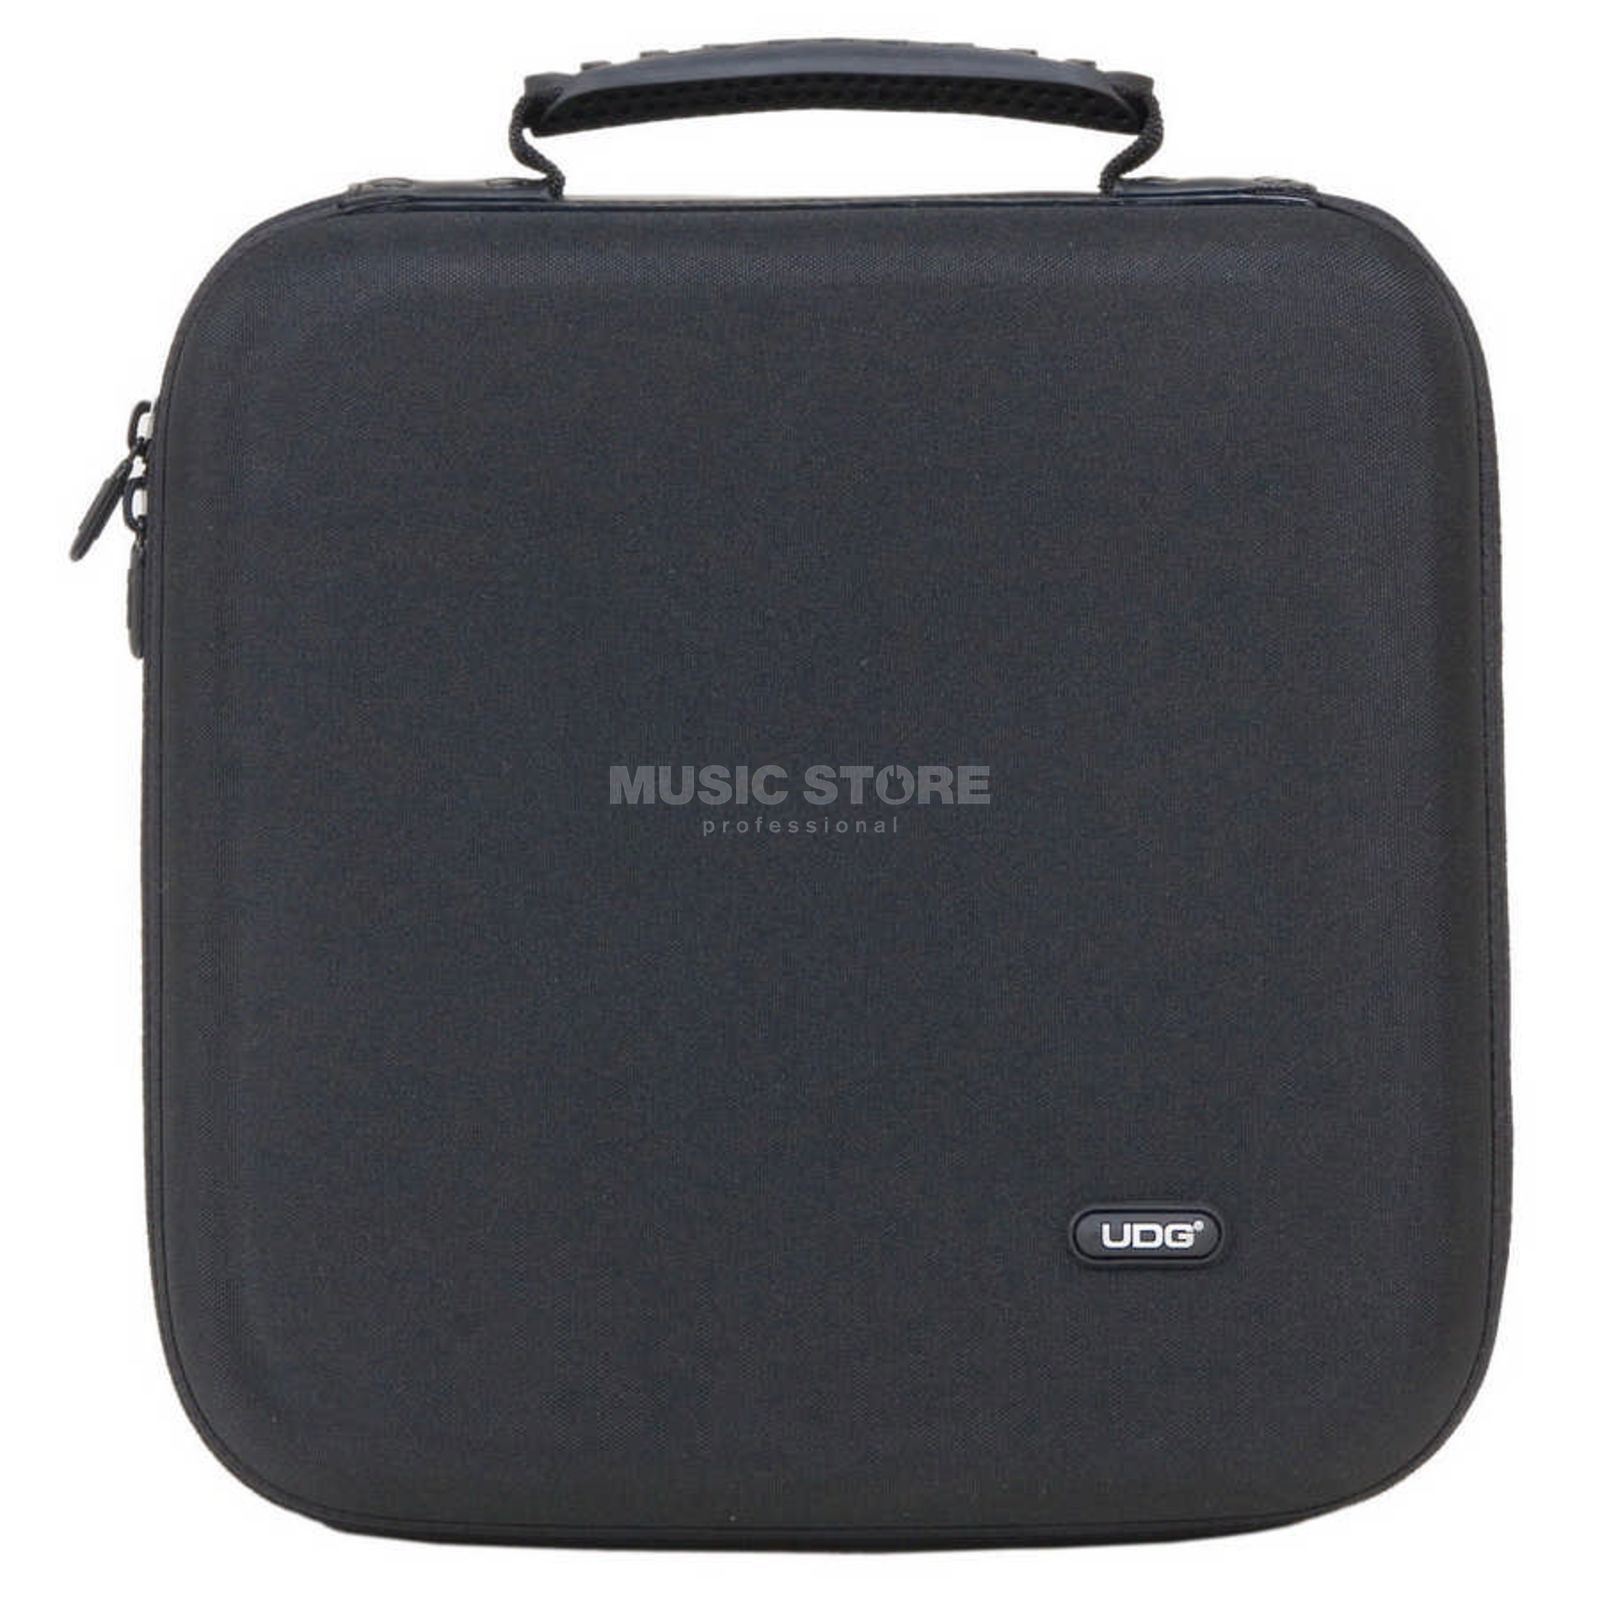 UDG Creator CD Tank 120 Black (U8025BL) Product Image